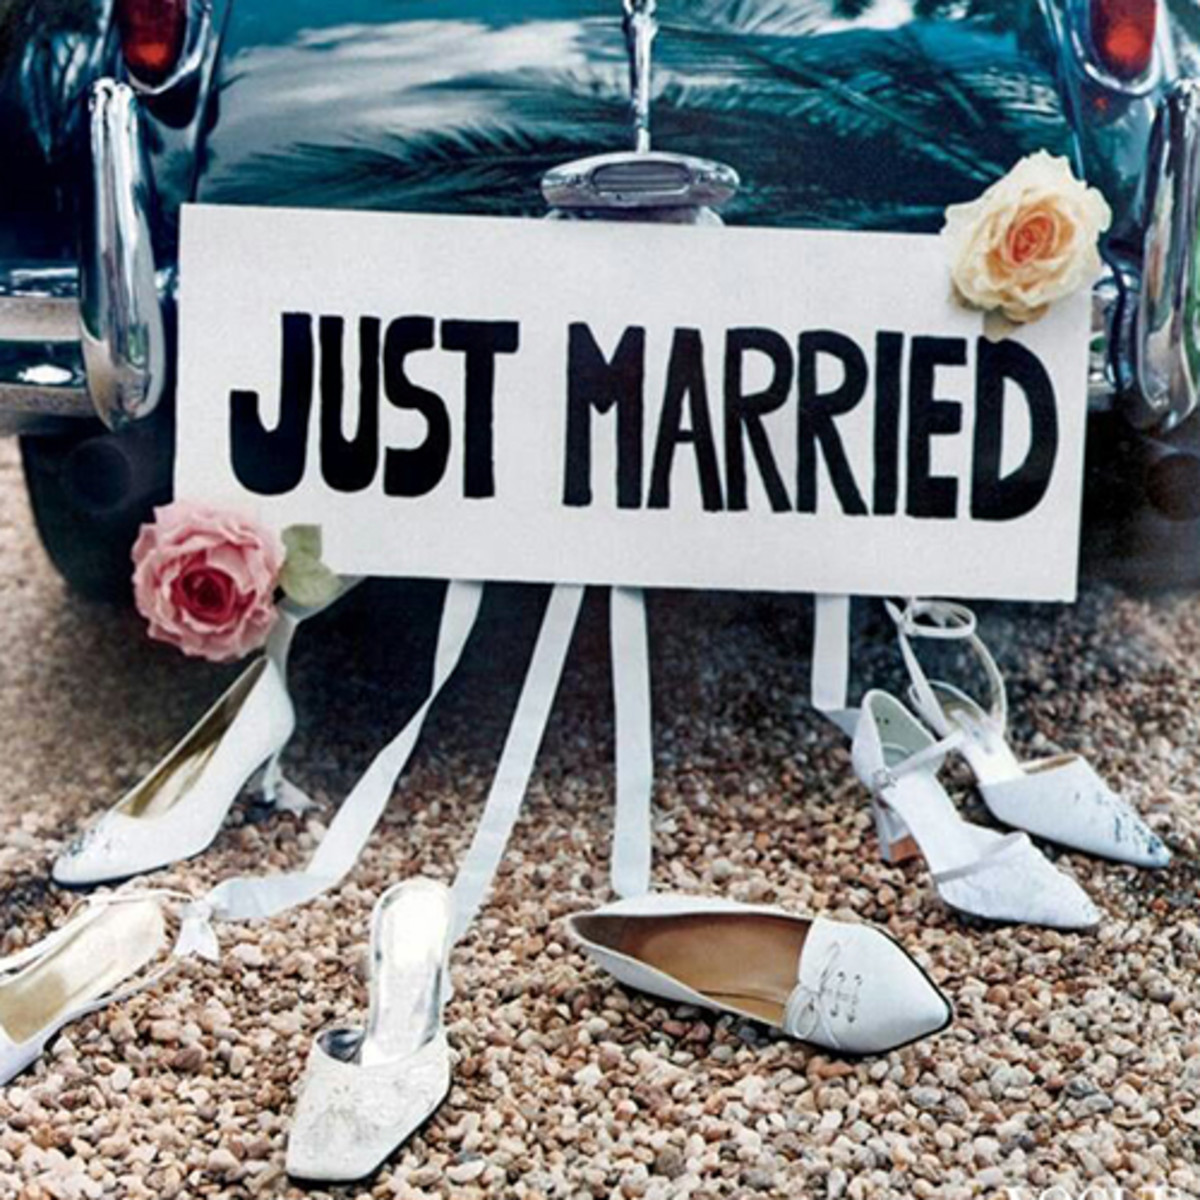 Just married shoes tied to car good luck